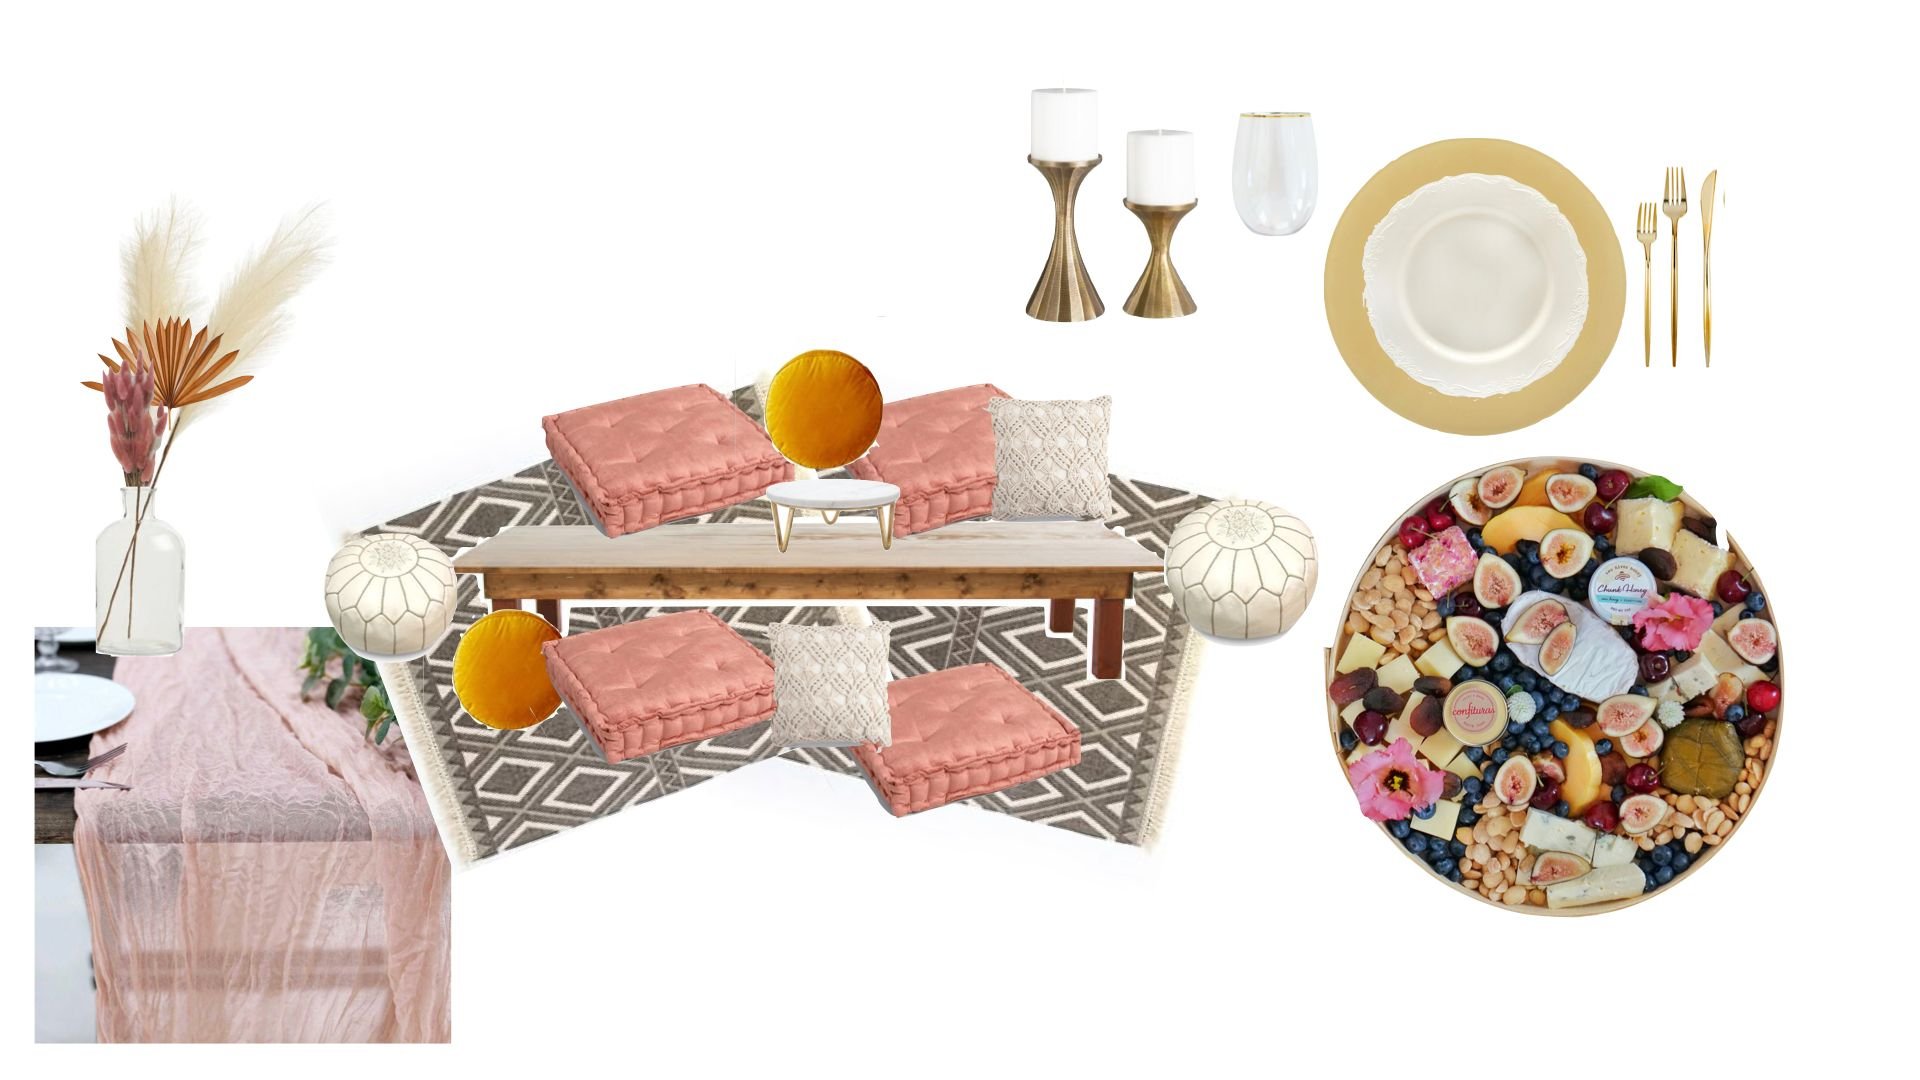 Dreams Pop Up Picnic Package Components